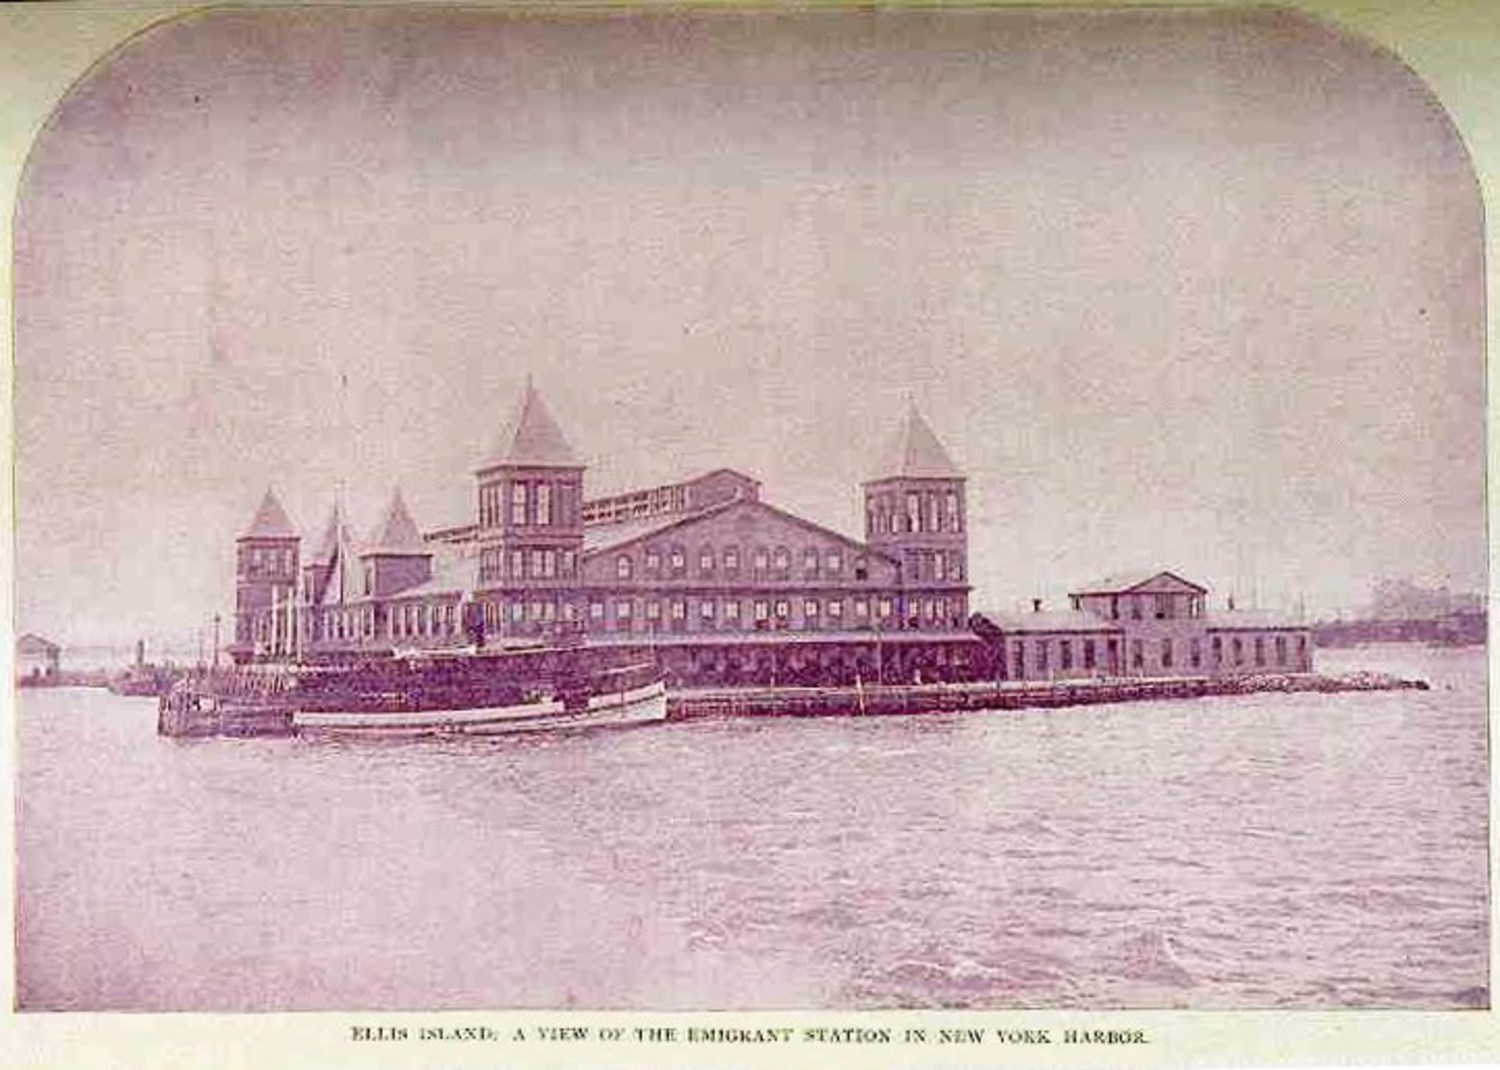 The 1st Ellis Island Processing Building (circa 1896) – Burnt Down in 1897